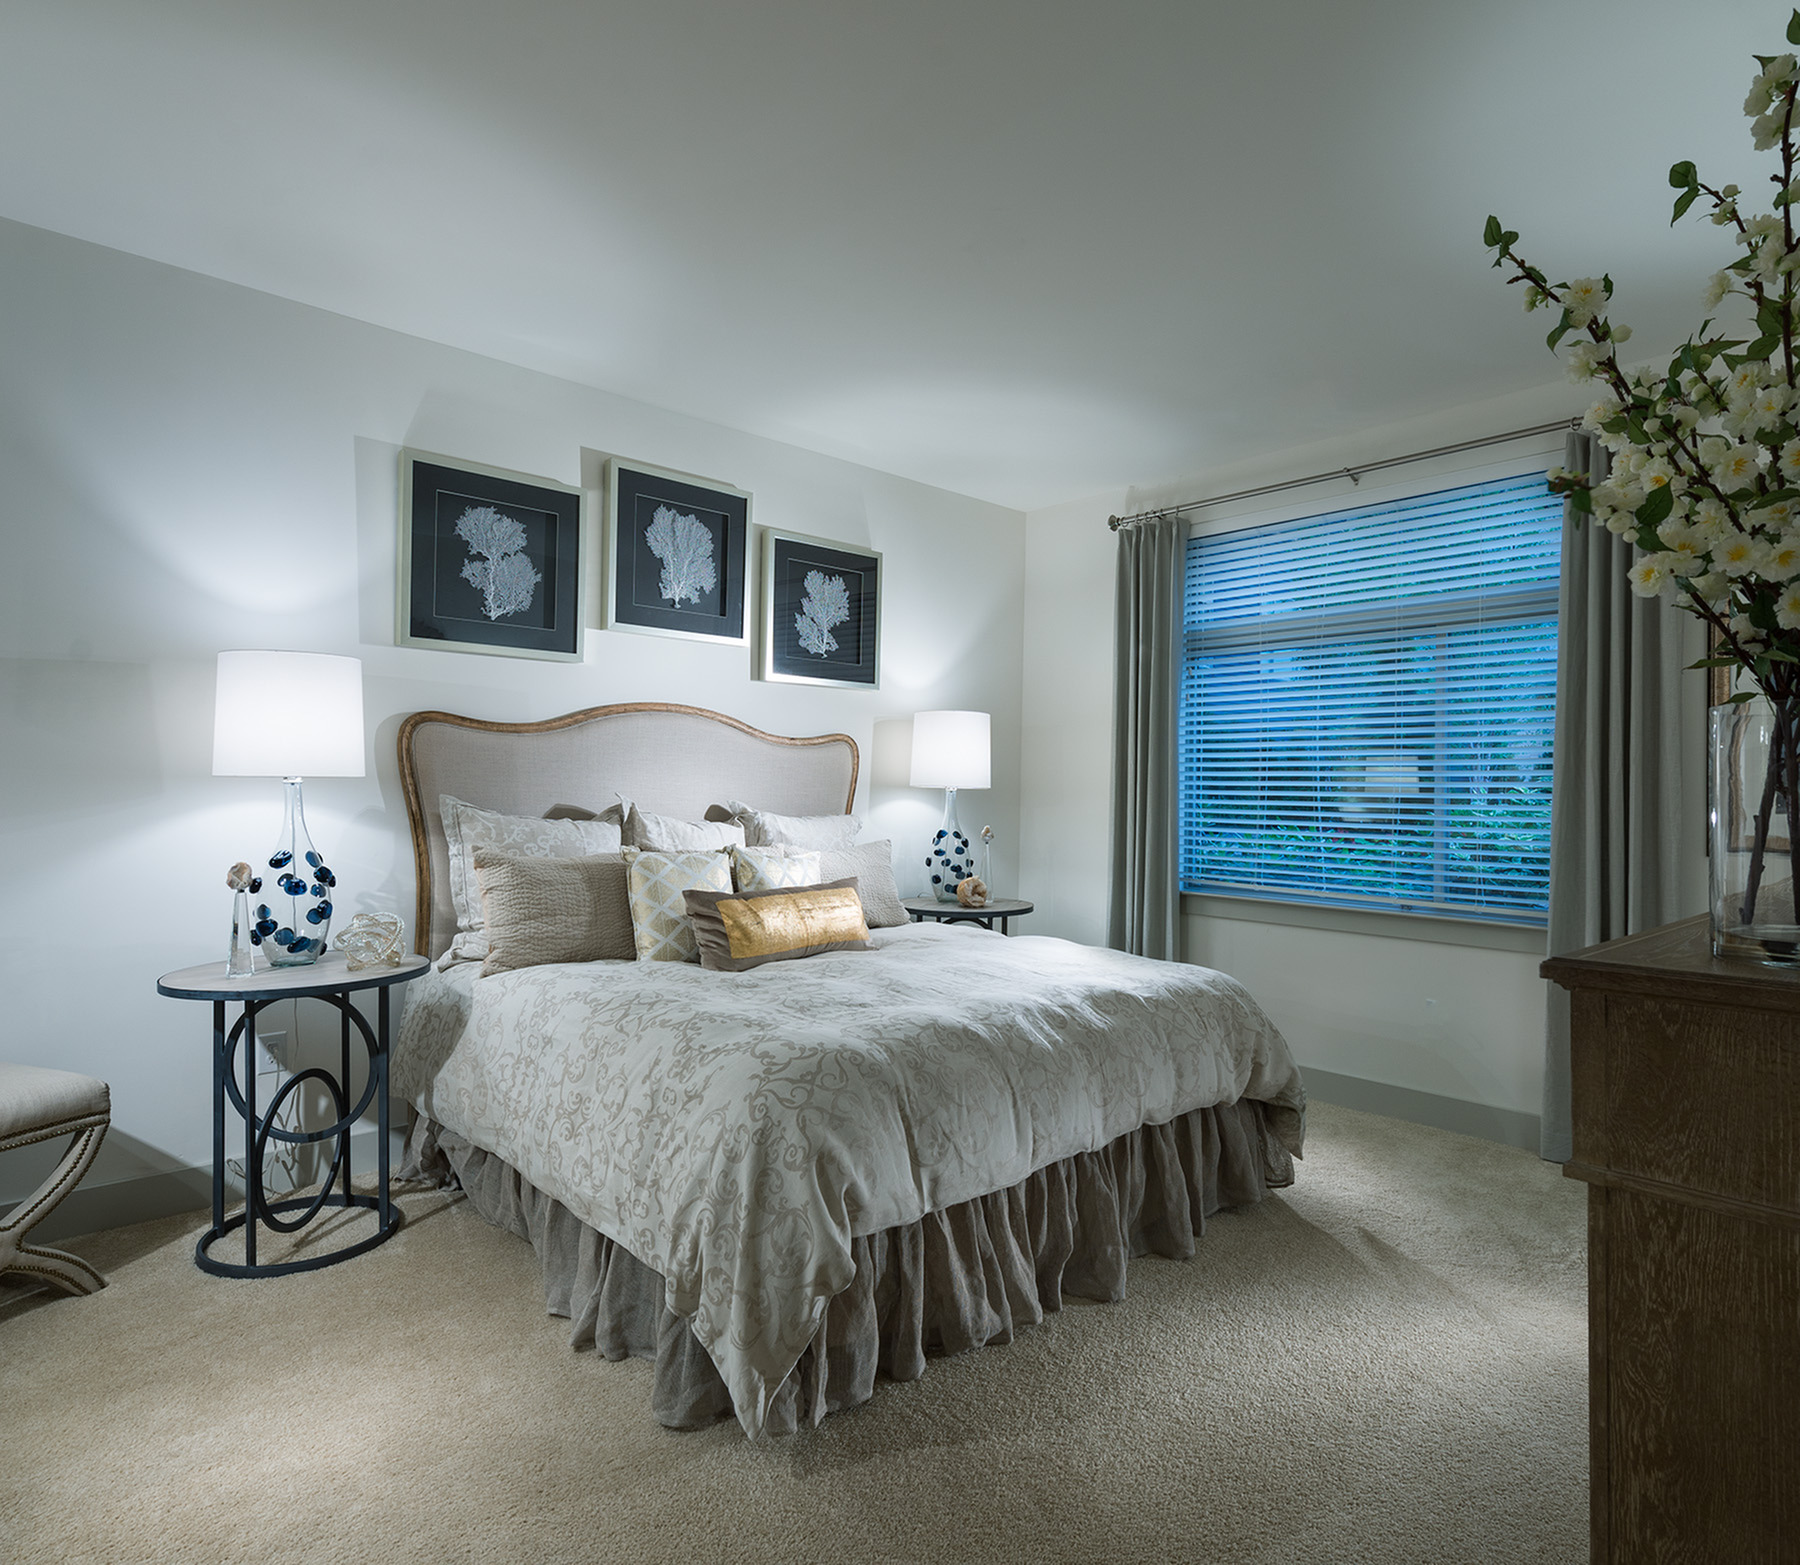 Image of Ample bedrooms that accommodate king-size beds for Hanover North Broad